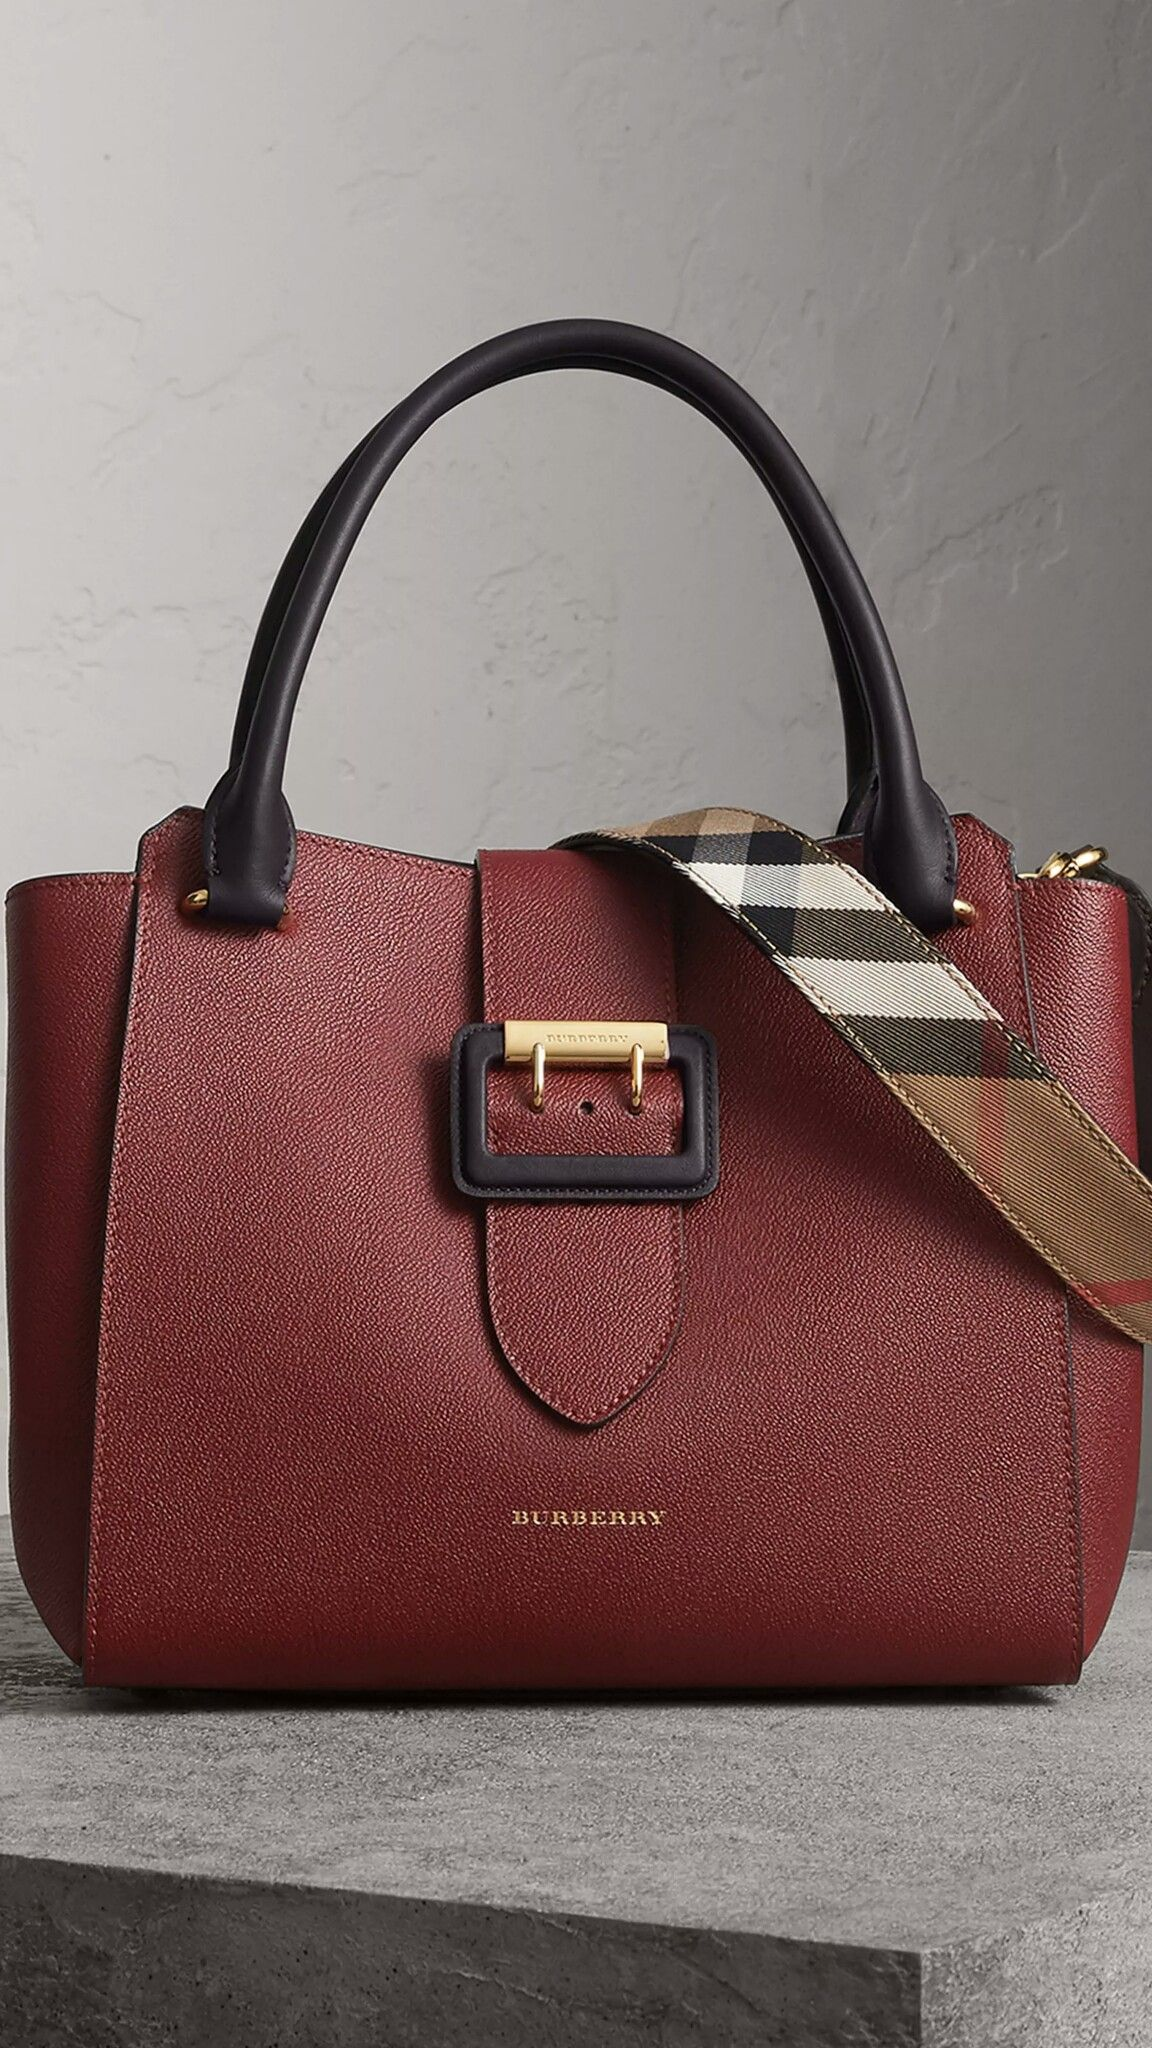 e6f143d7db75 Burberry Medium Buckle Tote in Two-tone Grainy Leather